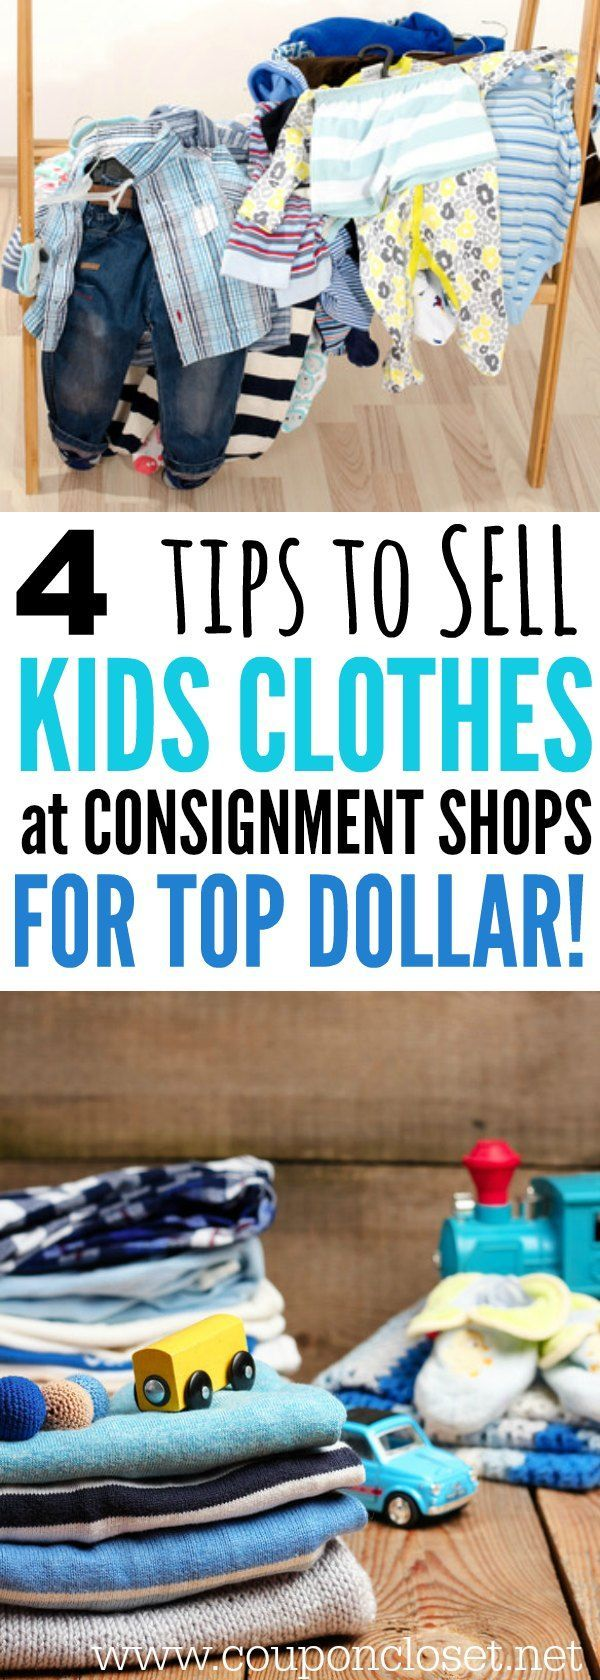 Do you sell at kids consignment shops? Here are 4 tips to Sell Kids Clothes at Children's Consignment Shops for Top Dollar!